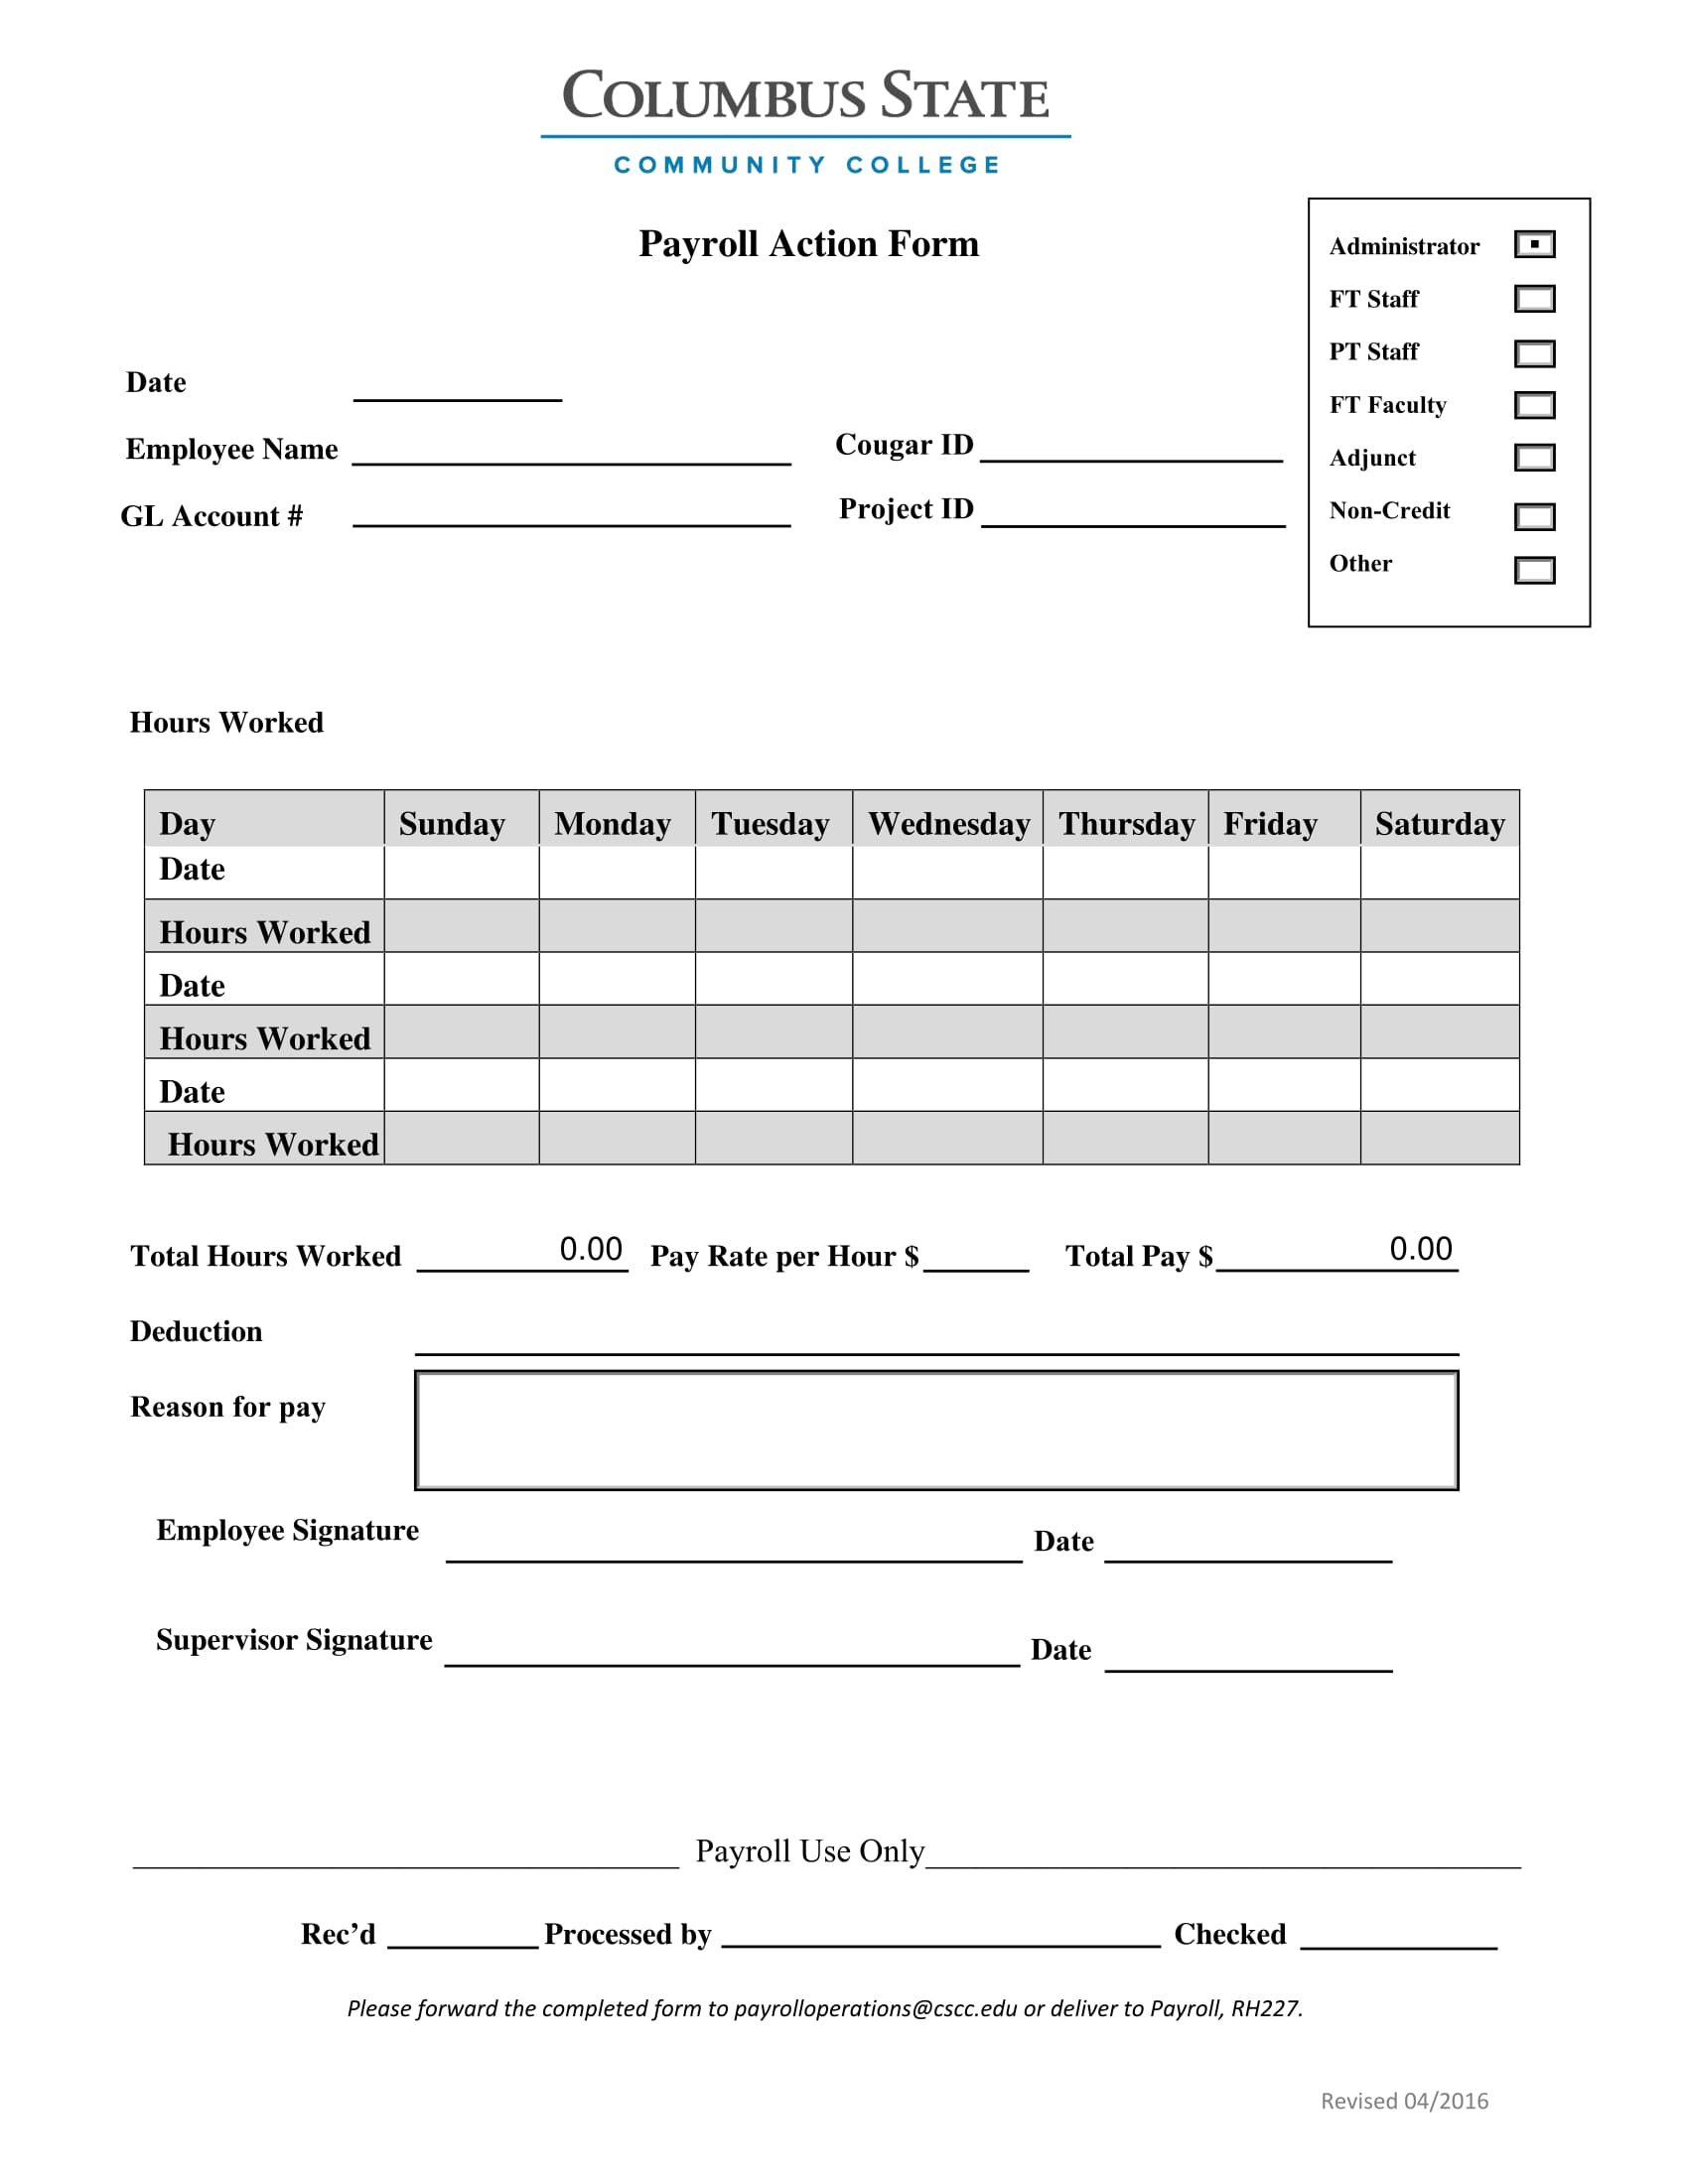 payroll action form 1